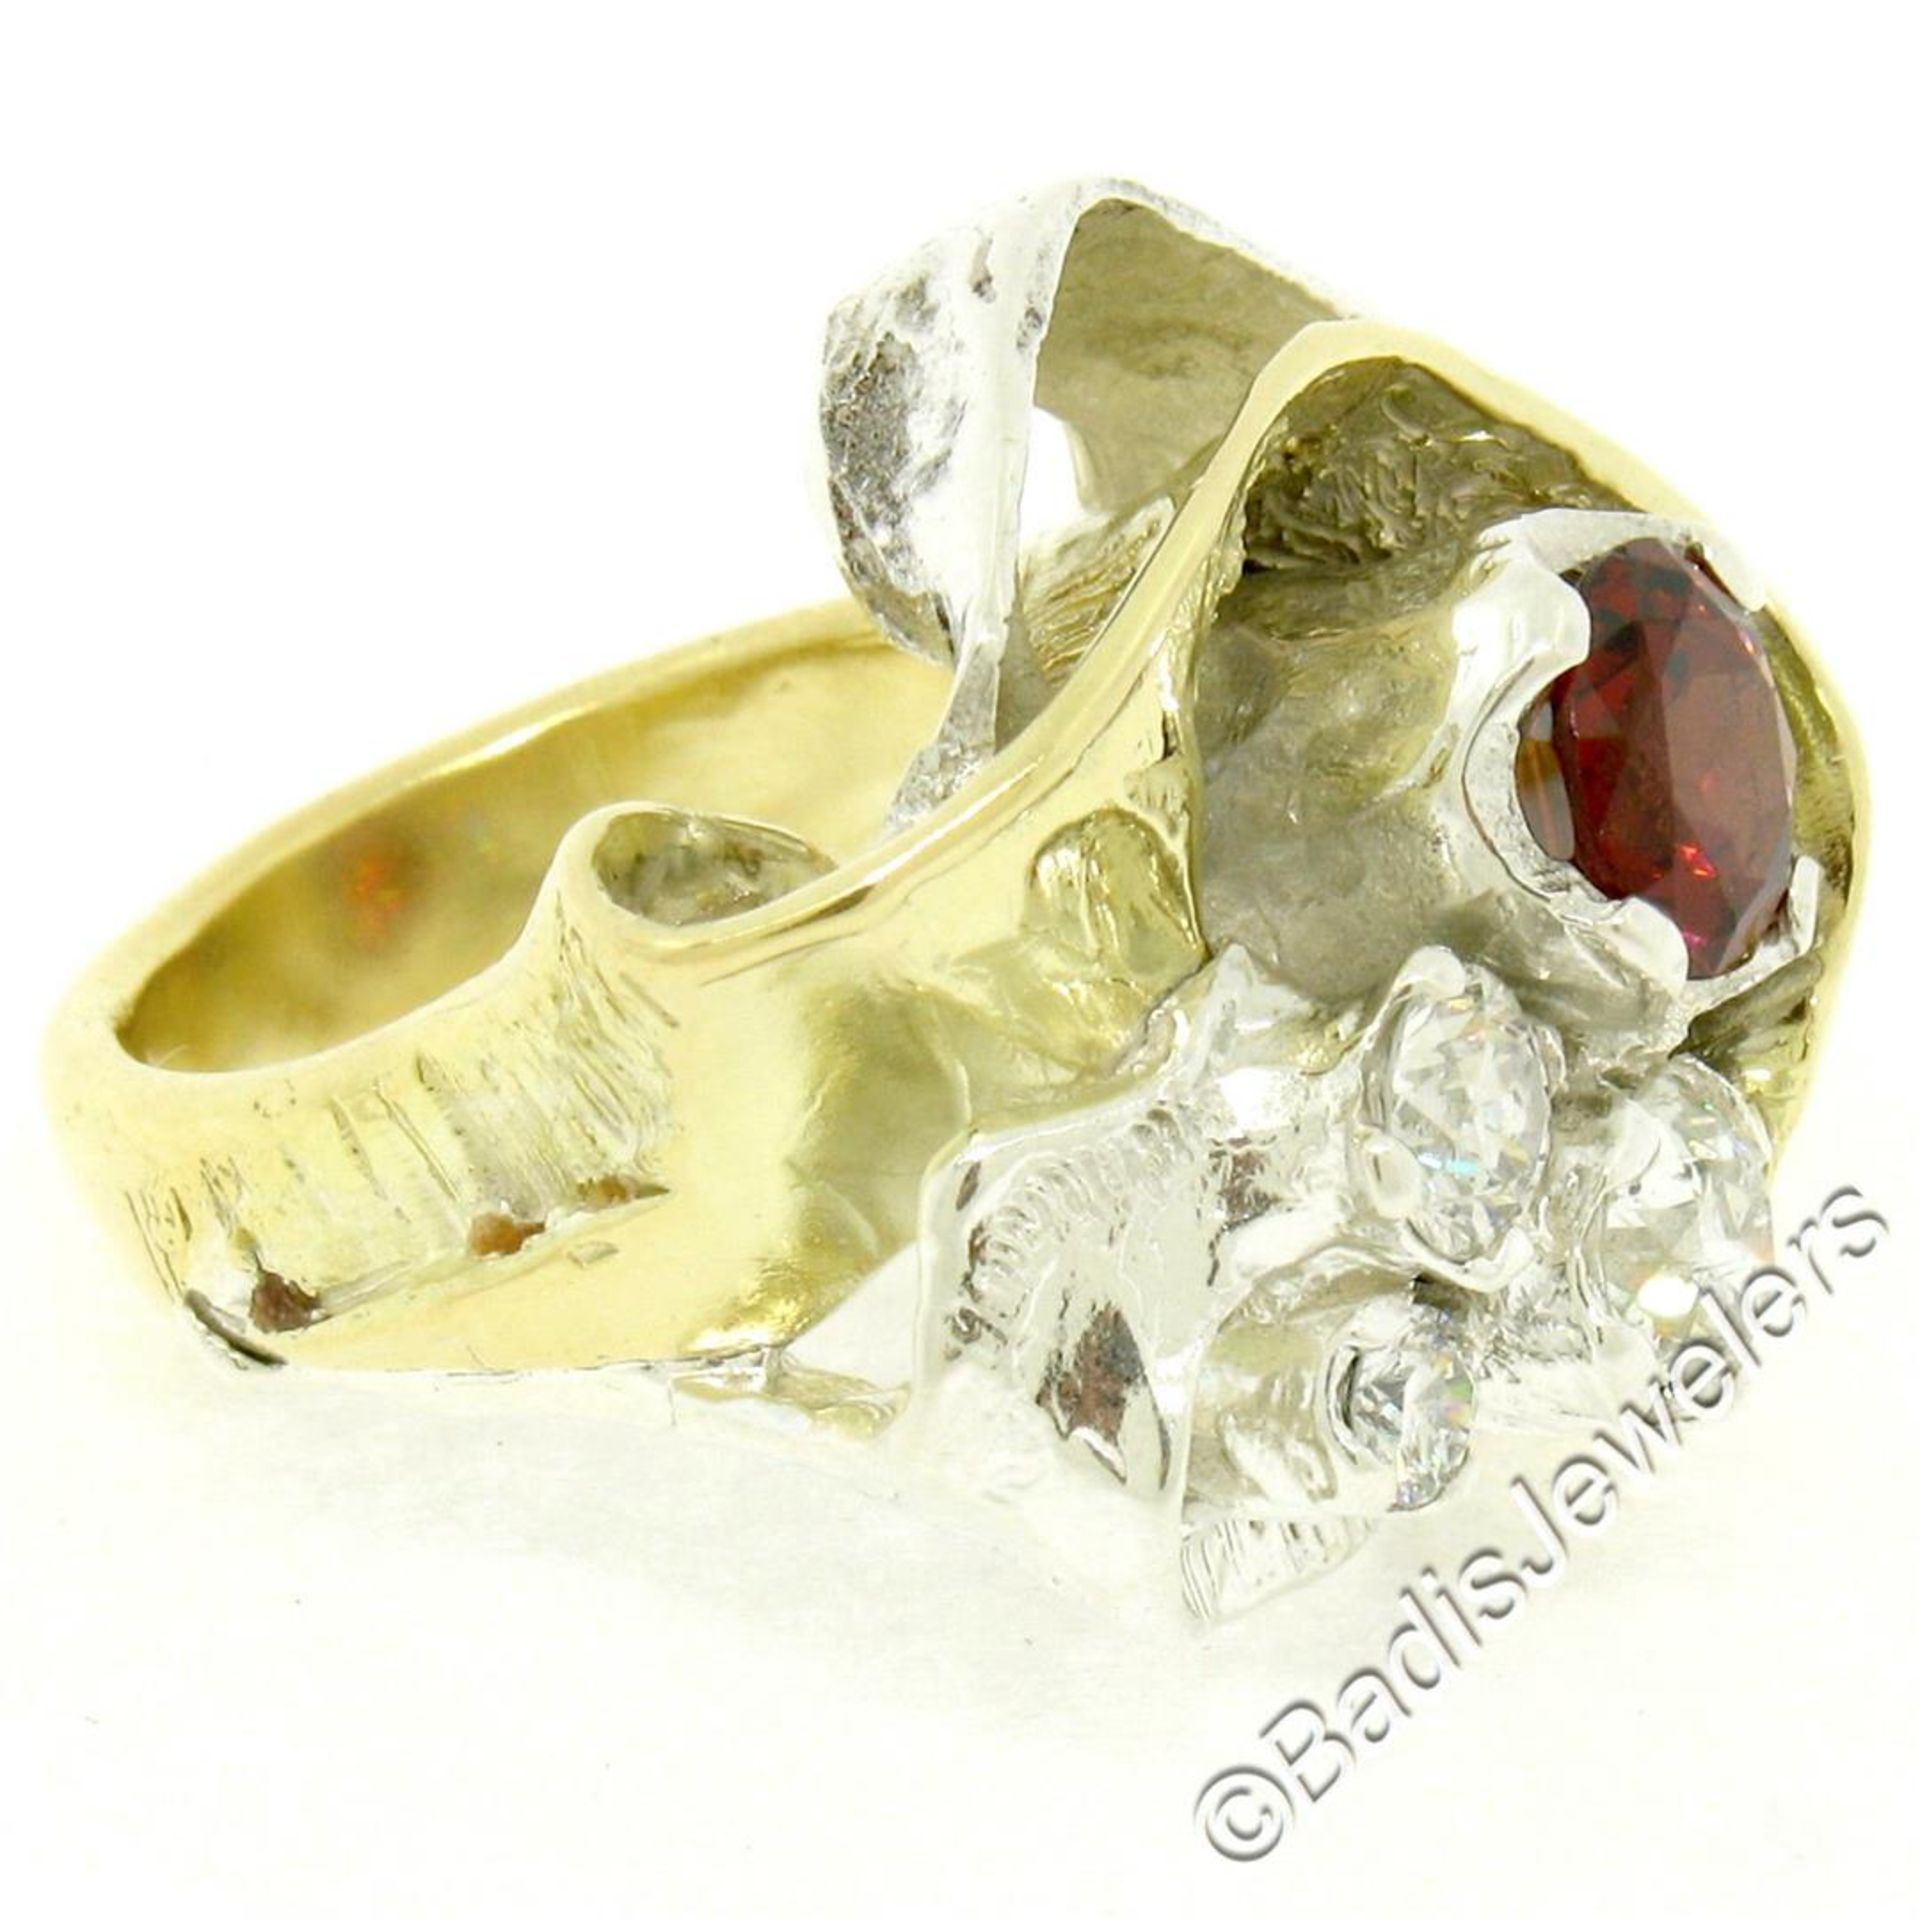 18kt Yellow Gold and Sterling Silver 2.73ctw Garnet and Diamond Cocktail Ring - Image 5 of 9